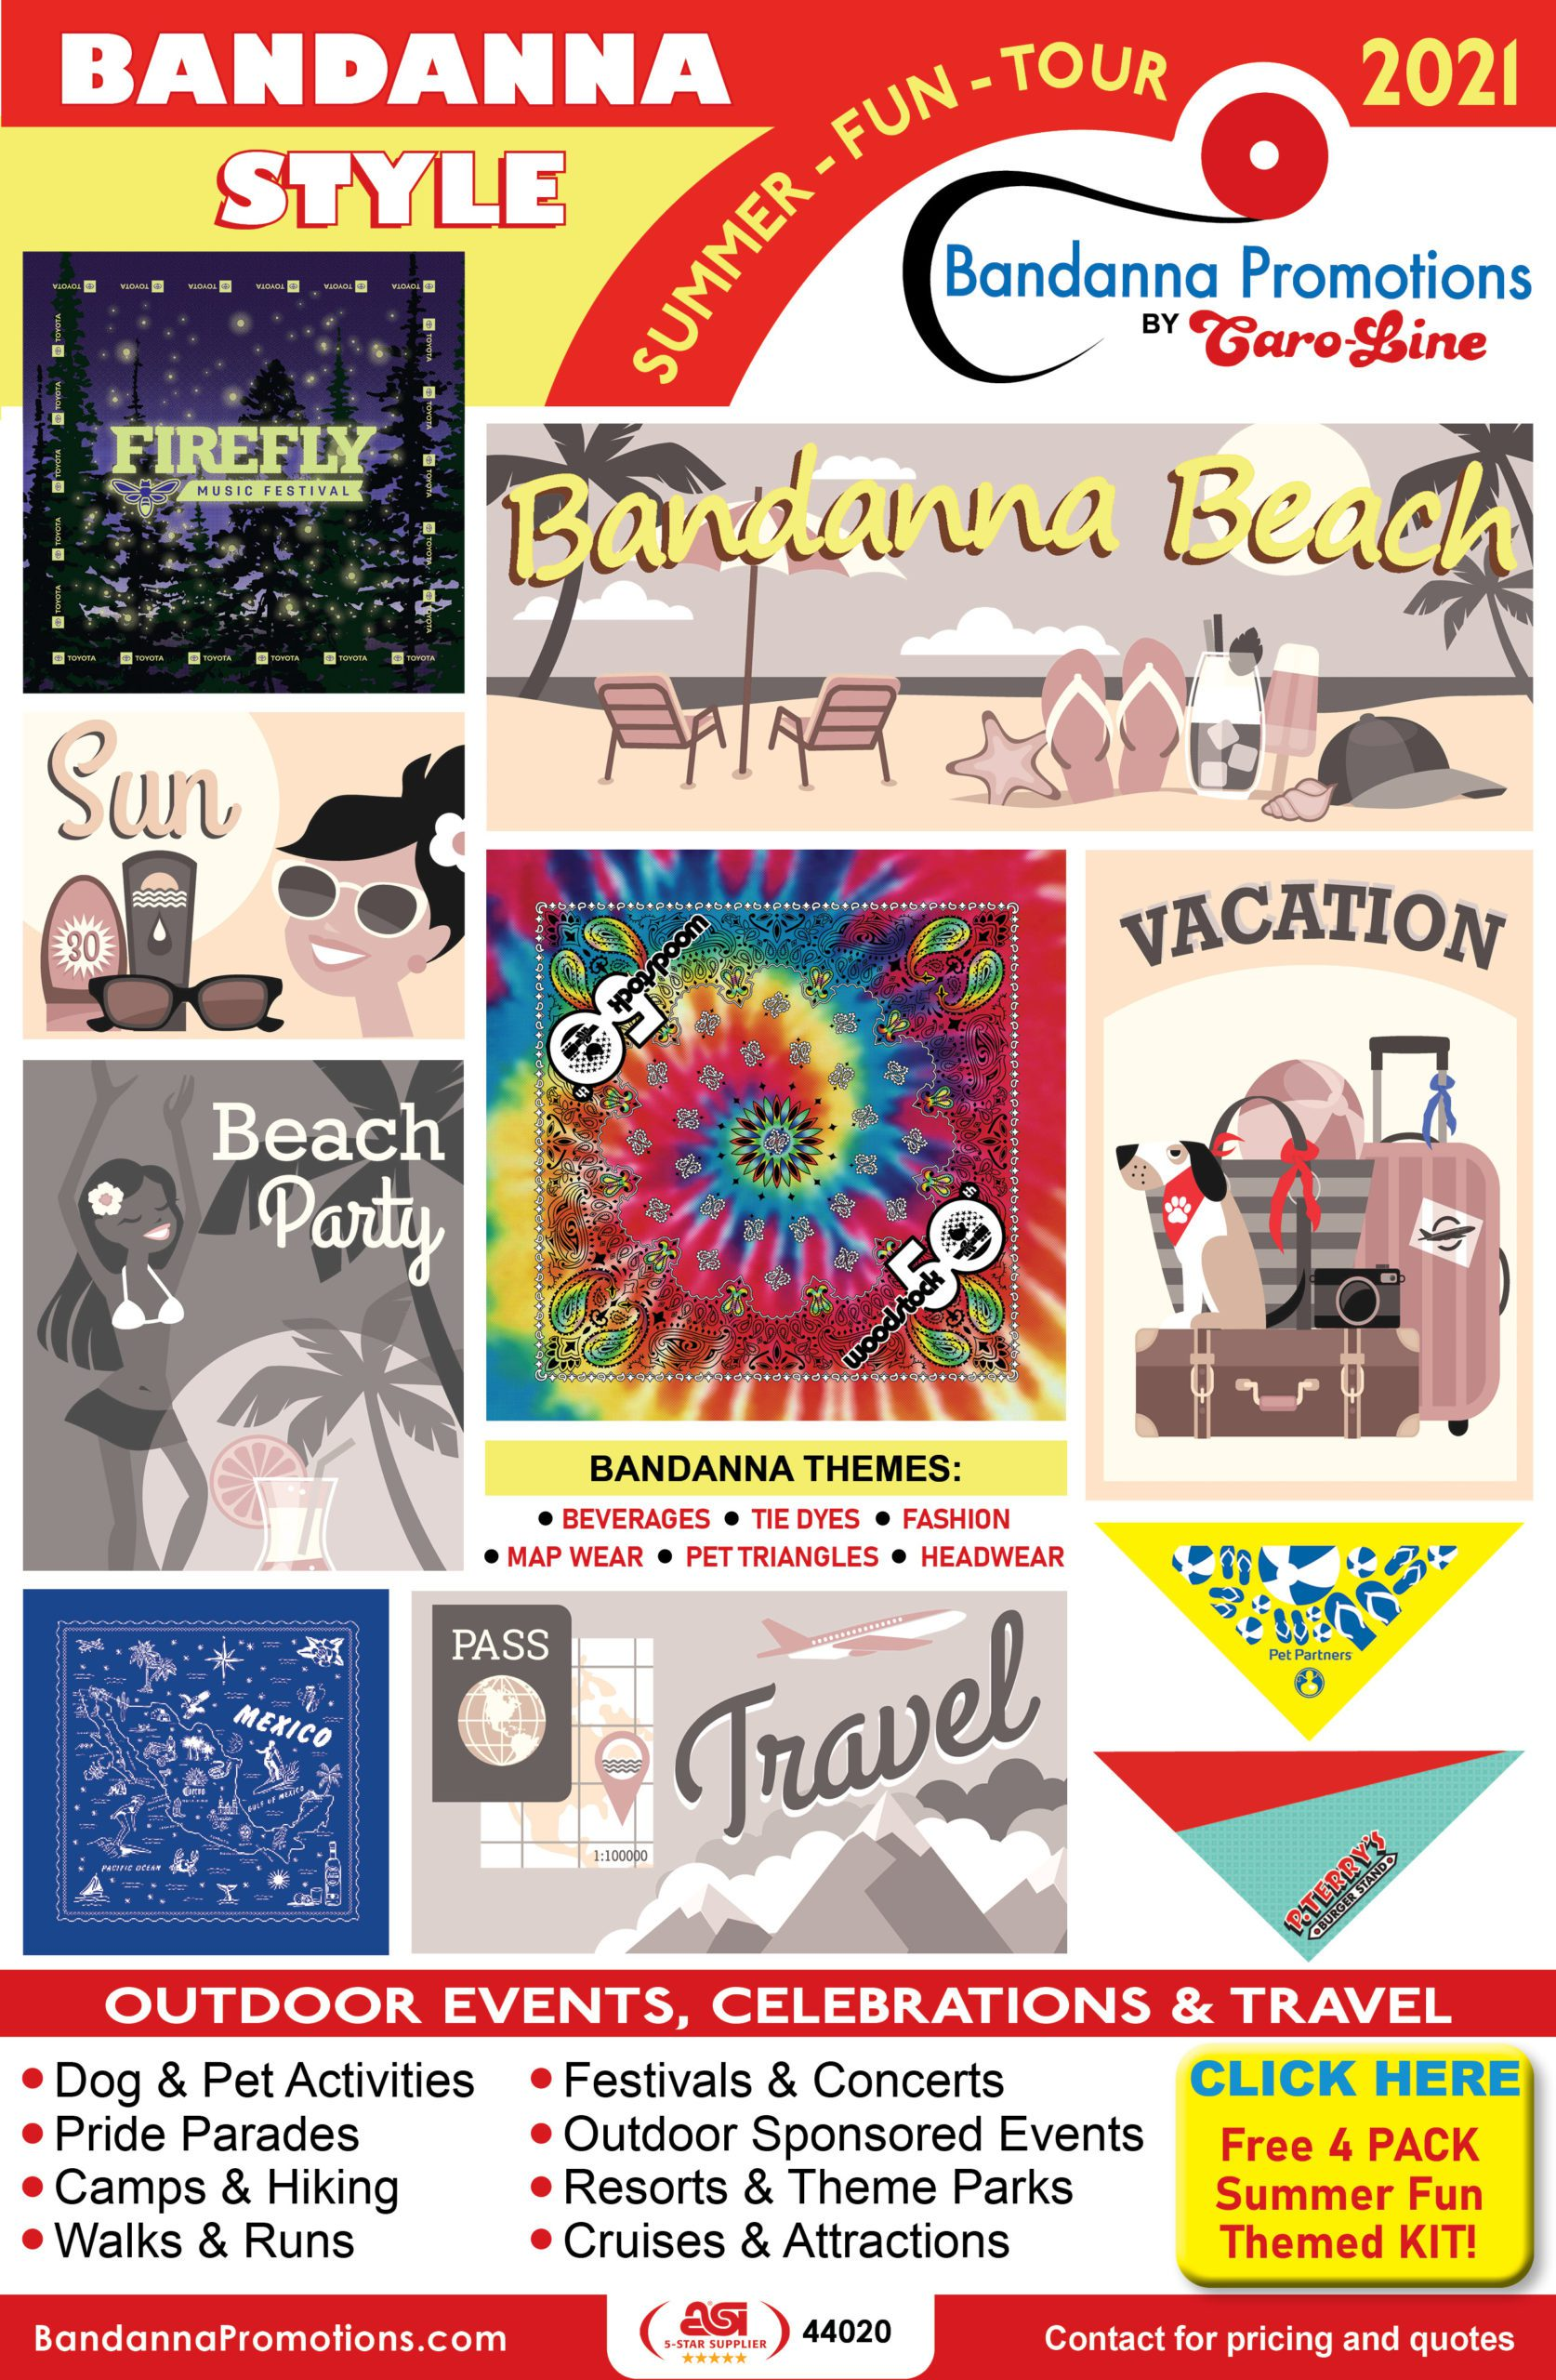 Image showing Bandanna Promotions various ways of creating bandannas.